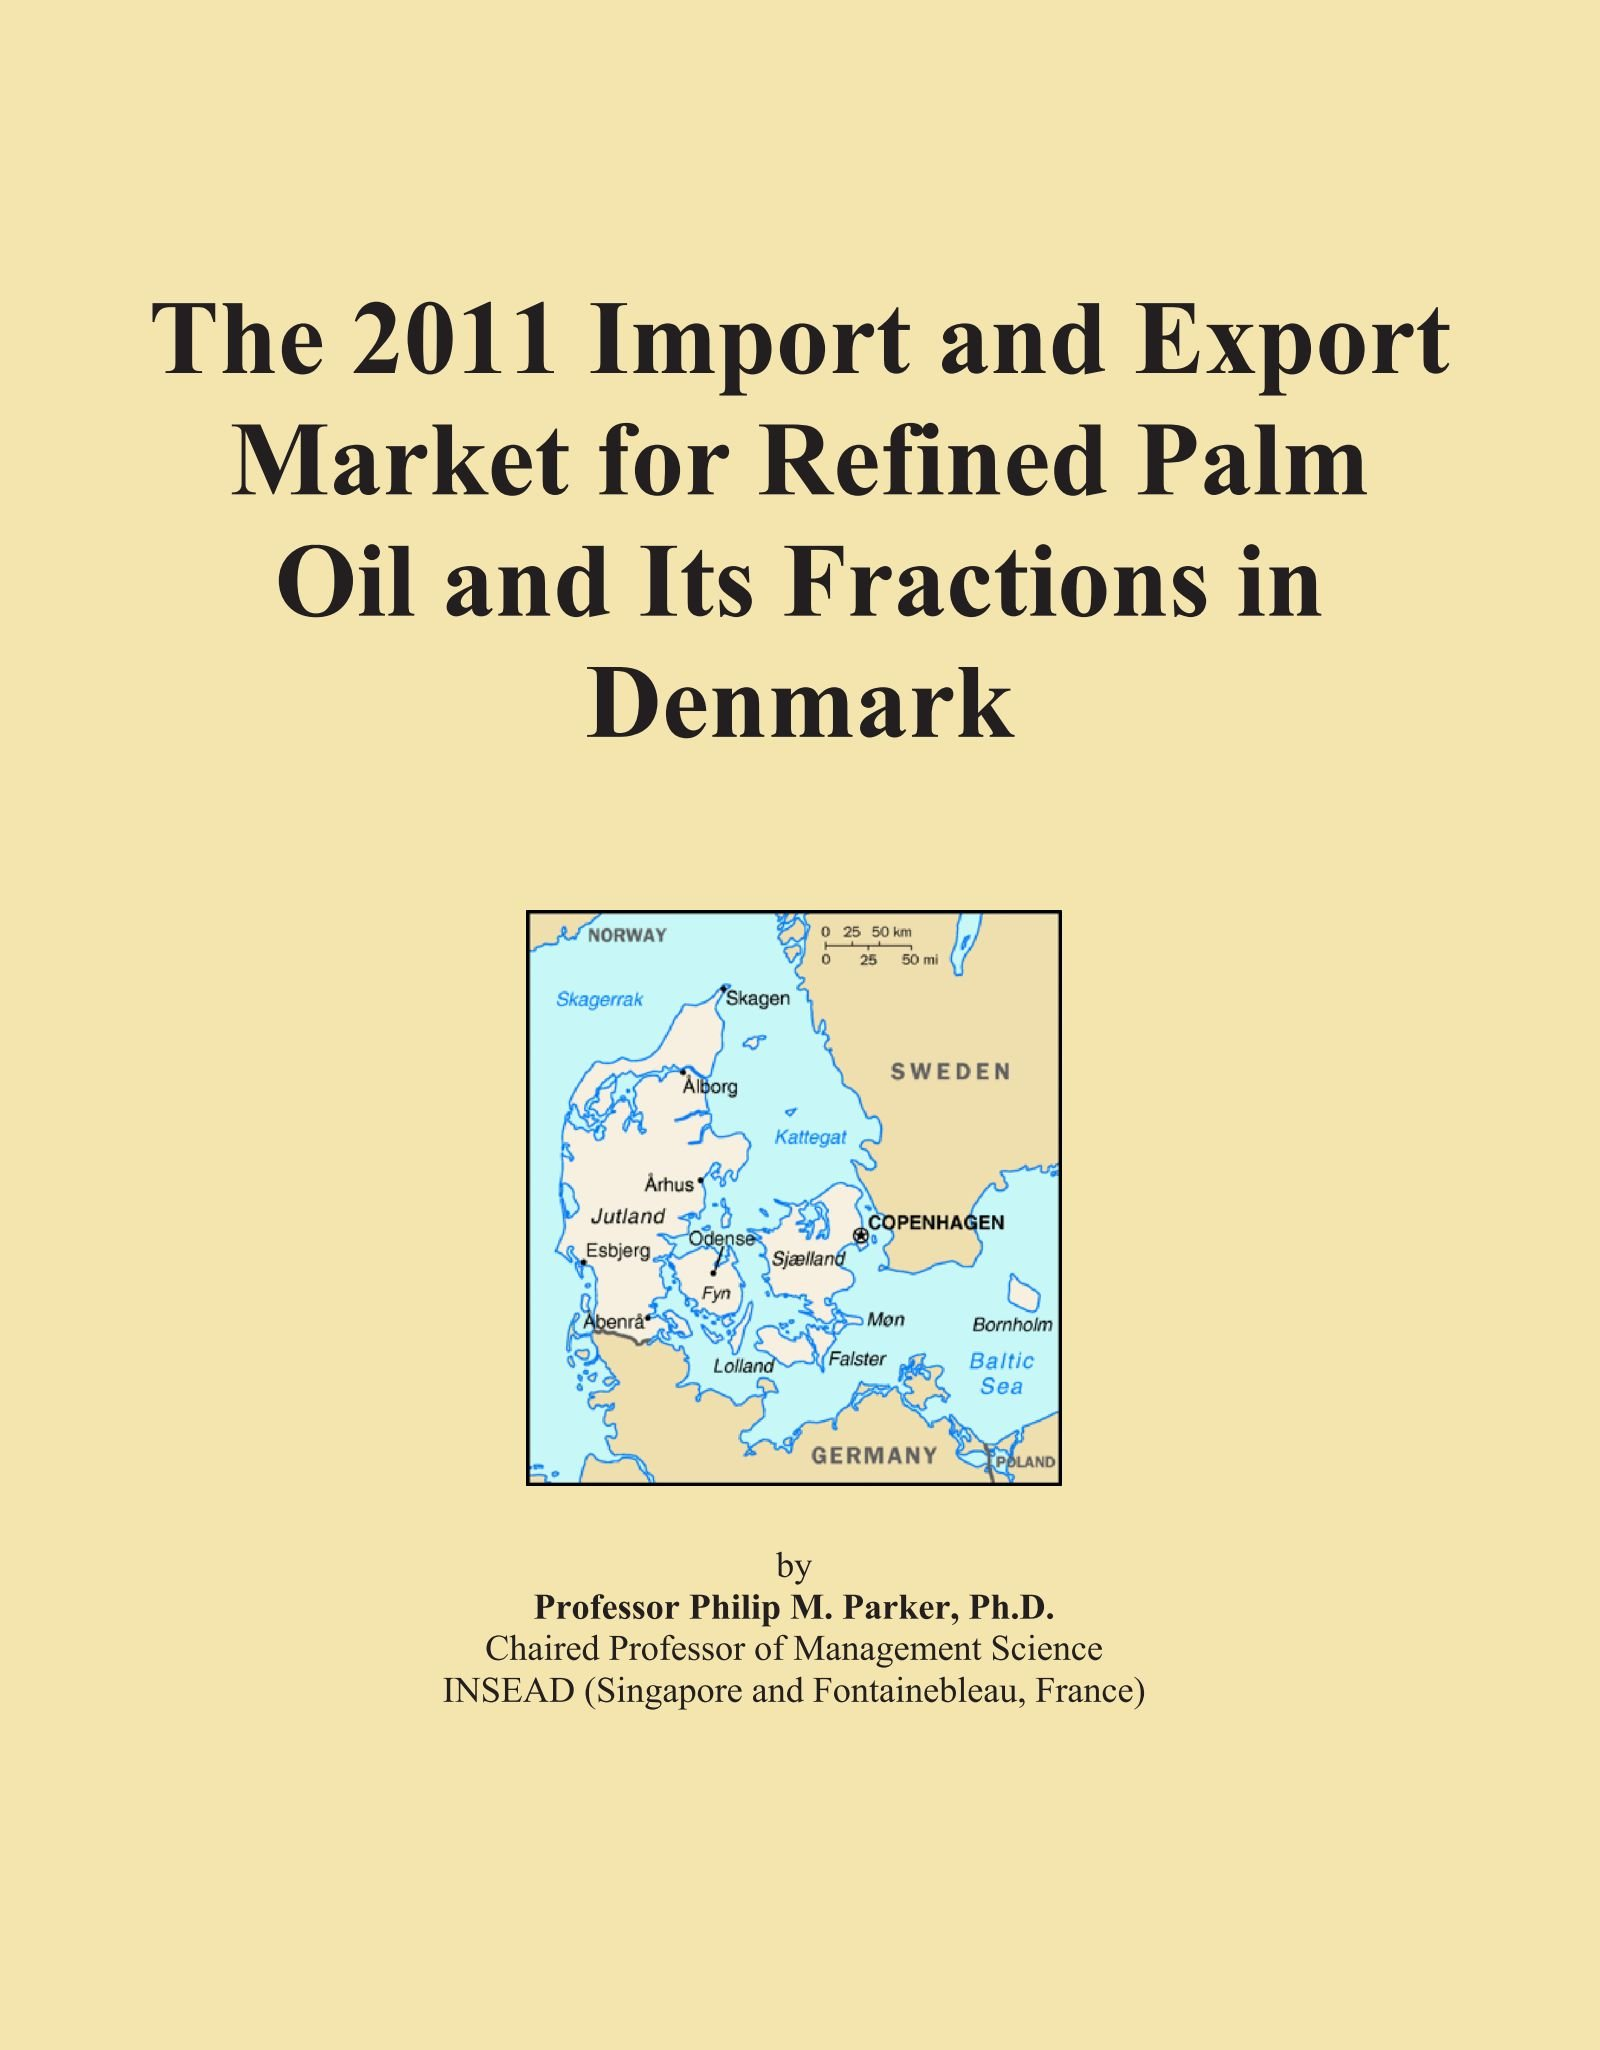 The 2011 Import and Export Market for Refined Palm Oil and Its Fractions in Denmark PDF